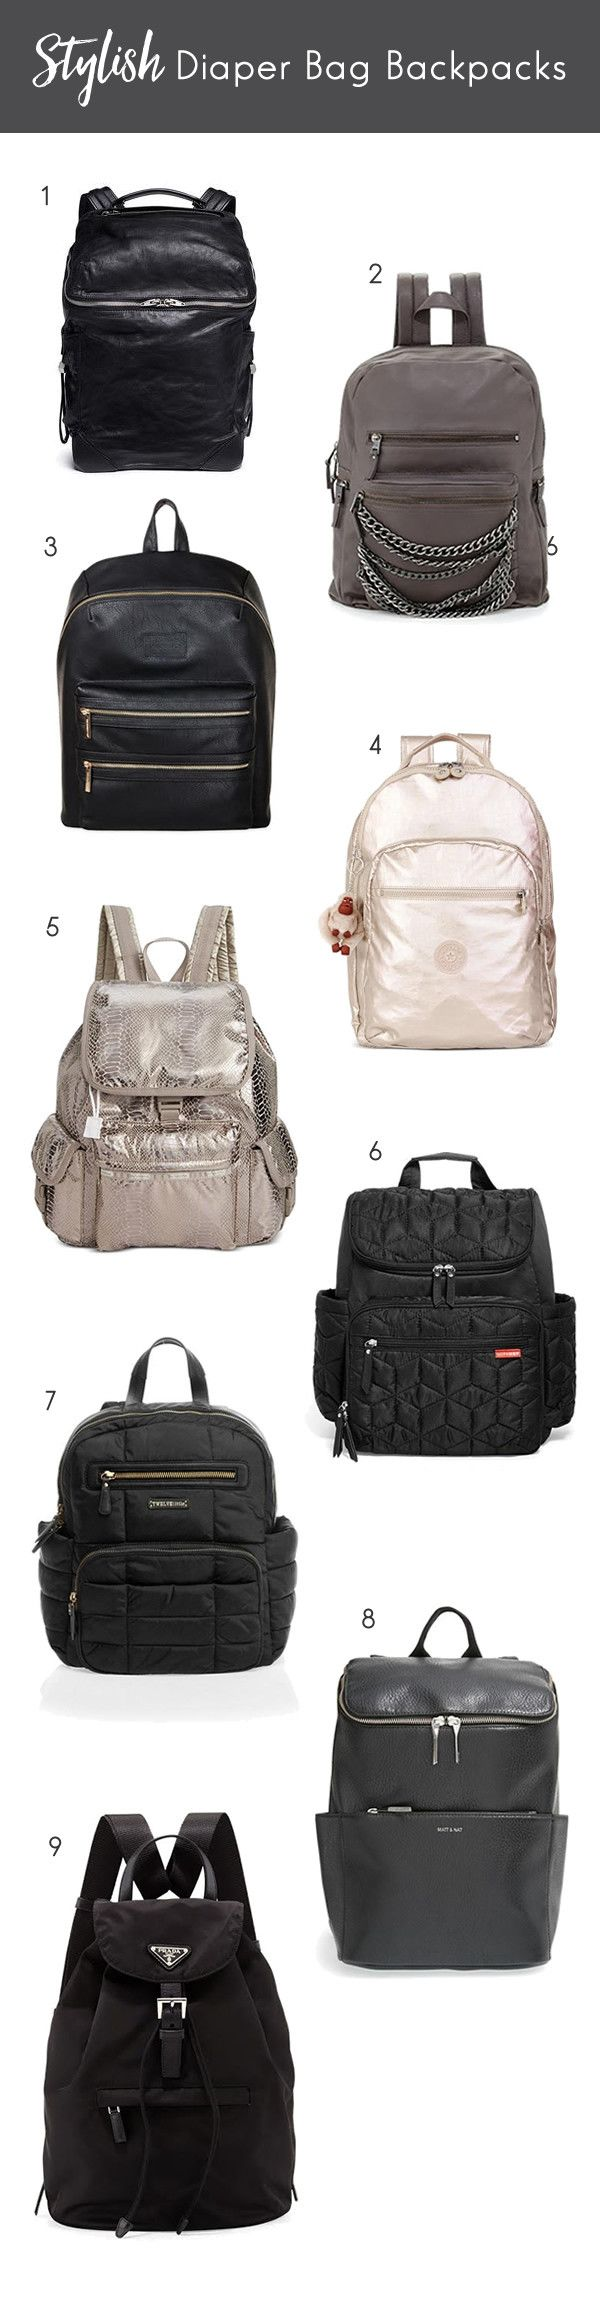 Arent these so cute?! Stylish Backpack Diaper Bags, the alternative to the traditional diaper bag | Read more at blog.cuteheads.com